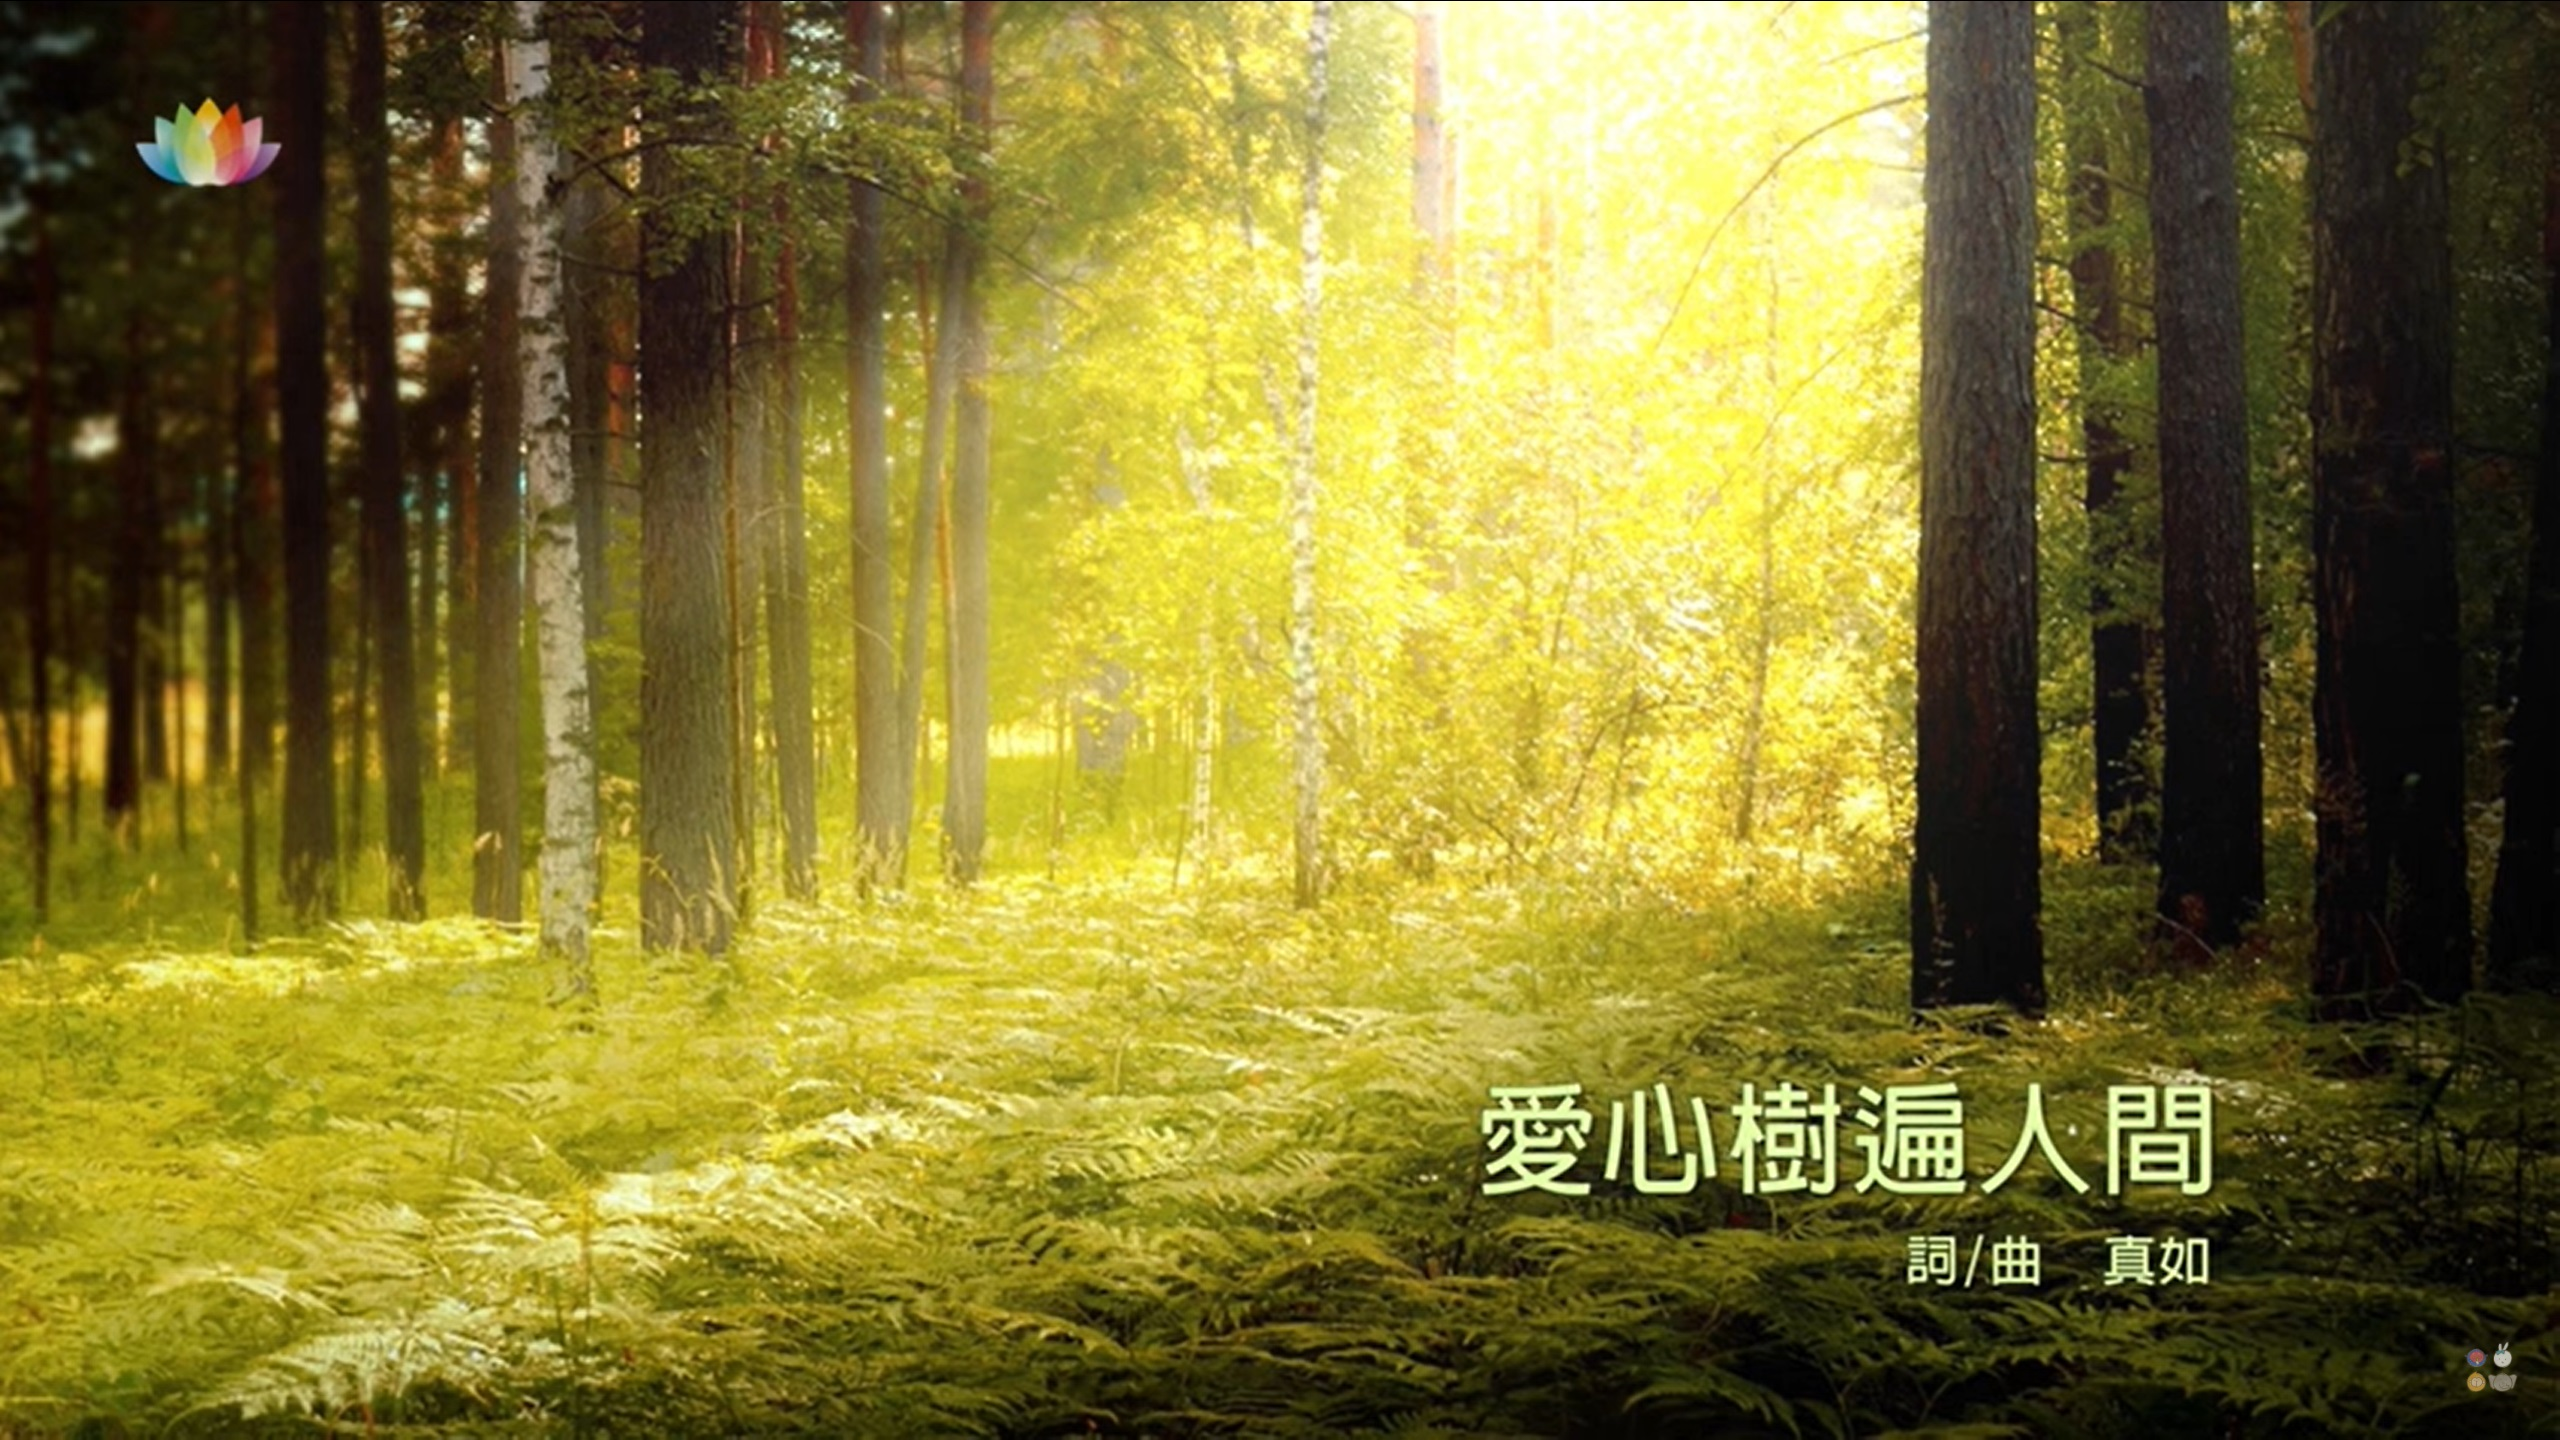 HEARTSTRINGS OF PRAISE:《在這個時候:祝福您》IN THIS MOMENT: A GIFT OF MELODY 20.10.2020